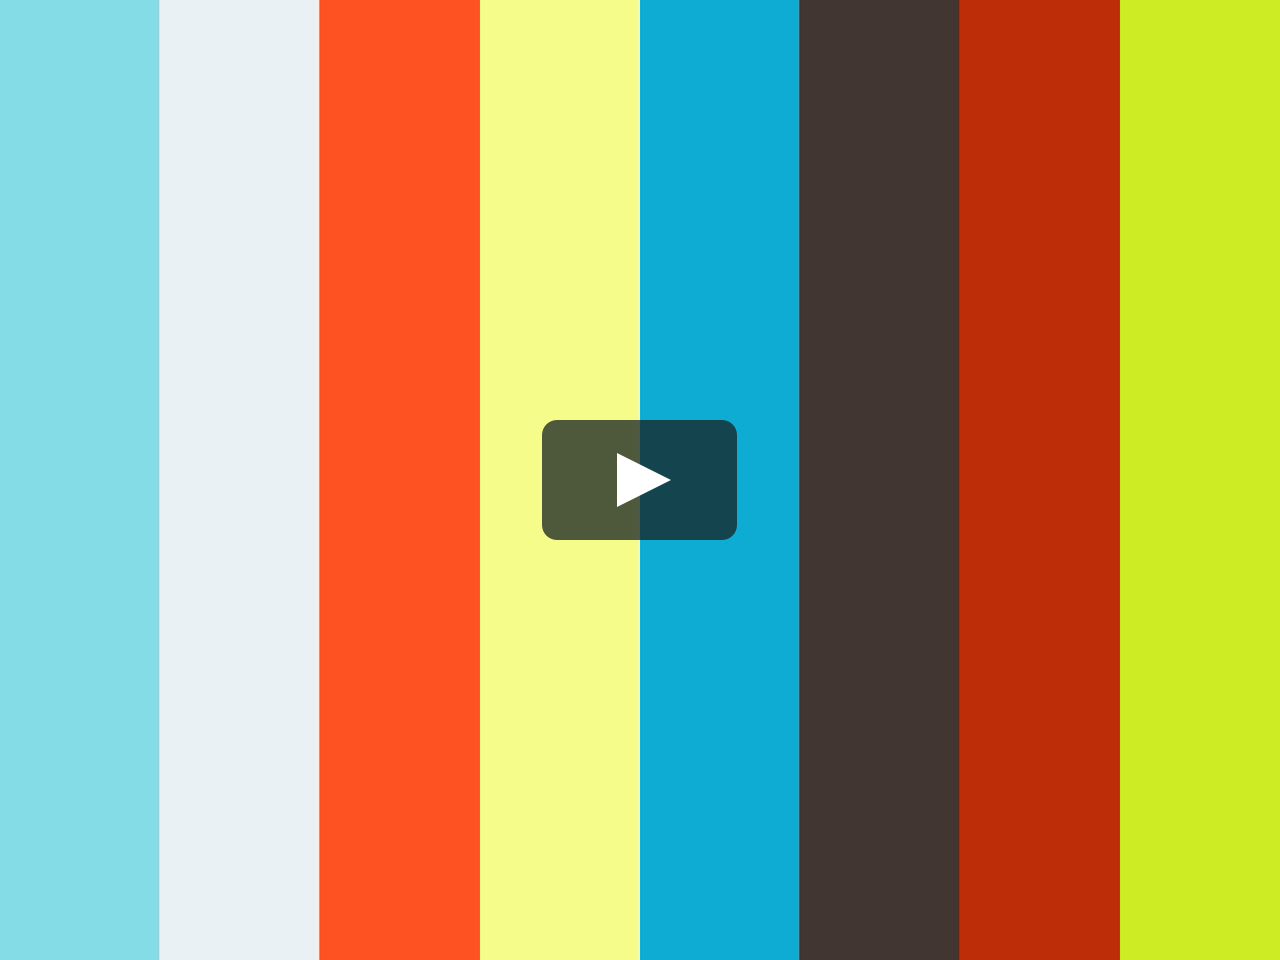 Nissan Teana Gps Navigation System Removal And Installation Guide On Wiring Diagram Vimeo